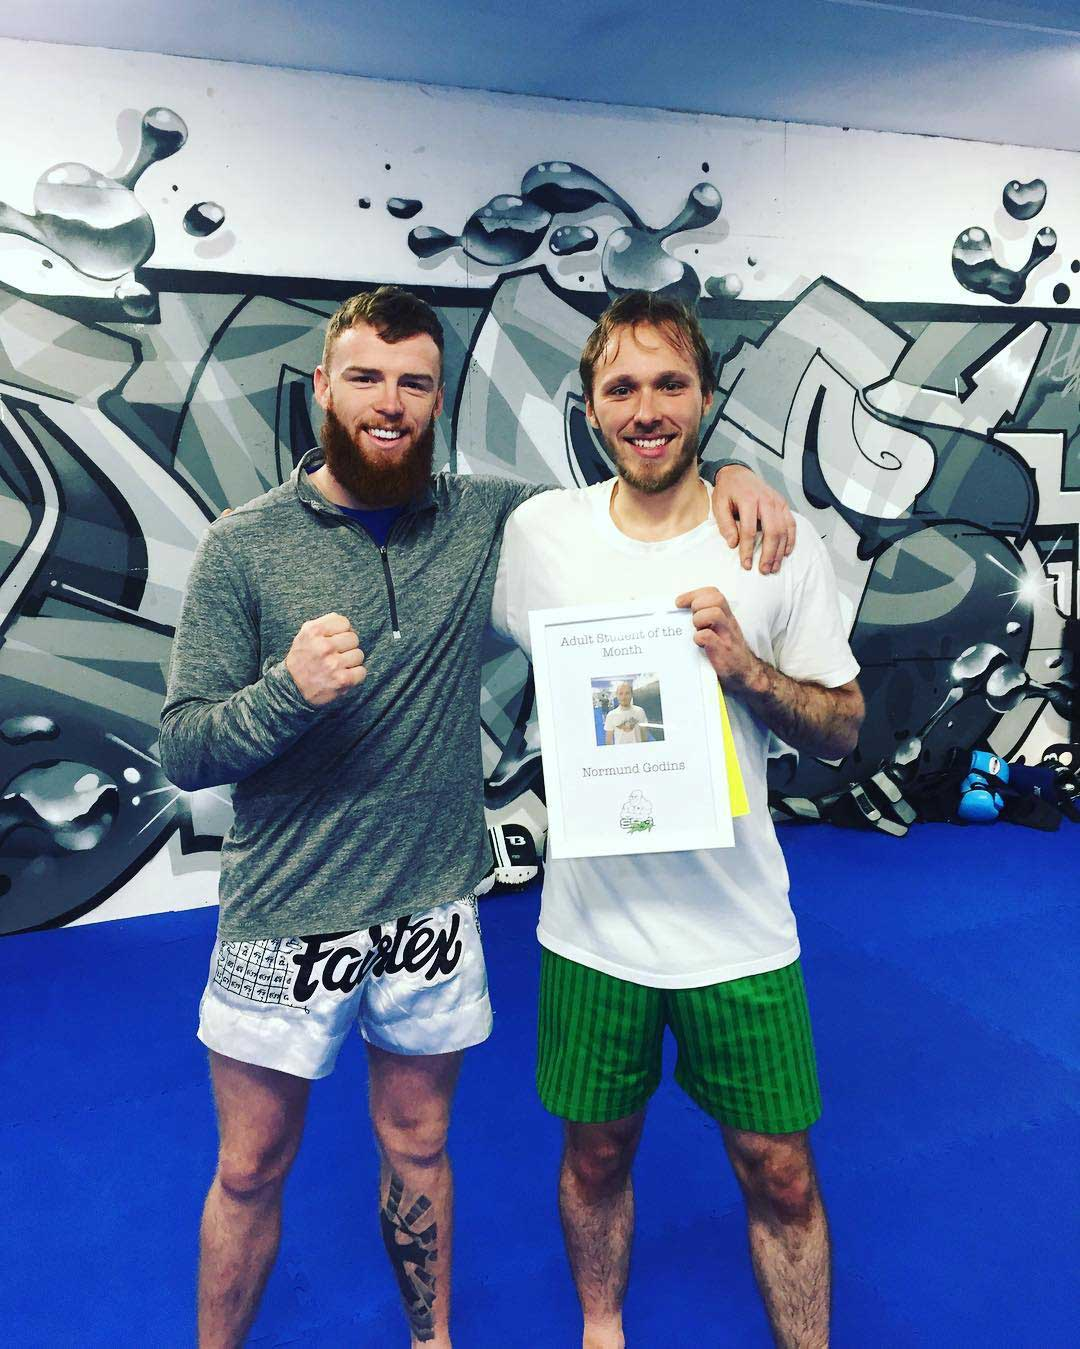 Normund is the sbg dublin24 student of the month